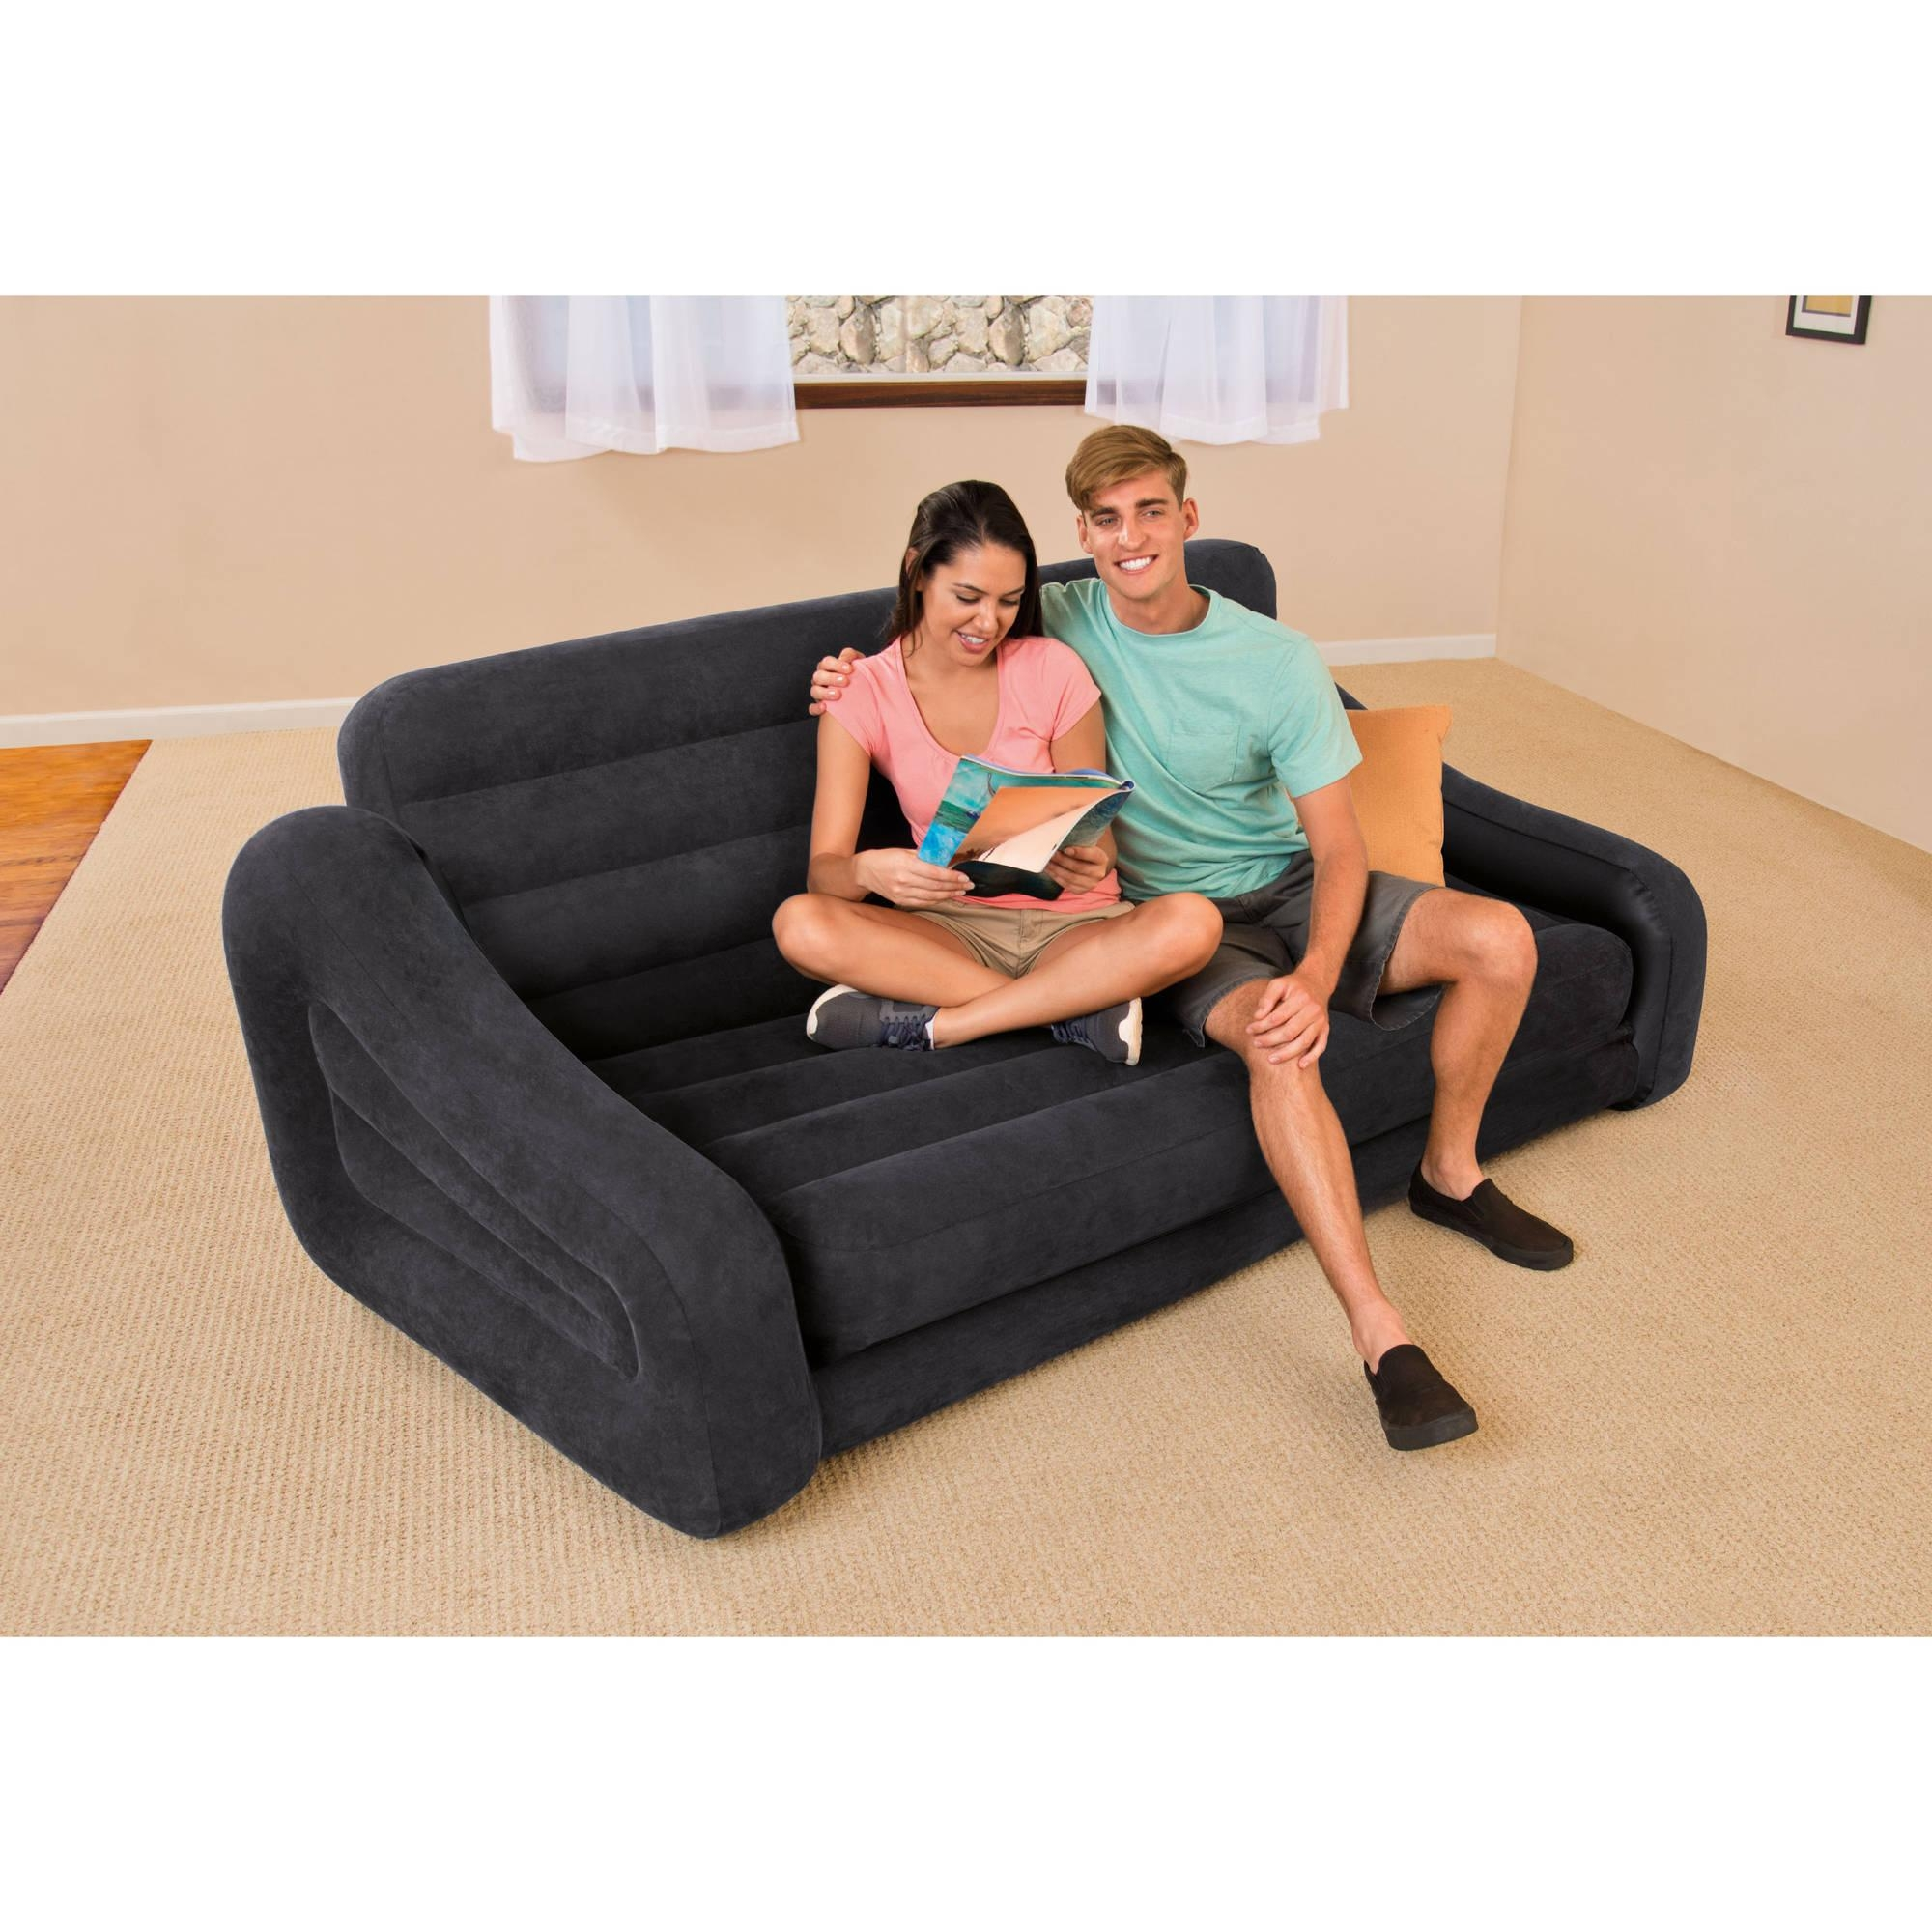 22 Inspirations Fold Up Sofa Chairs Sofa Ideas : intex queen inflatable pull out sofa bed walmart for fold up sofa chairs from tany.net size 2000 x 2000 jpeg 908kB